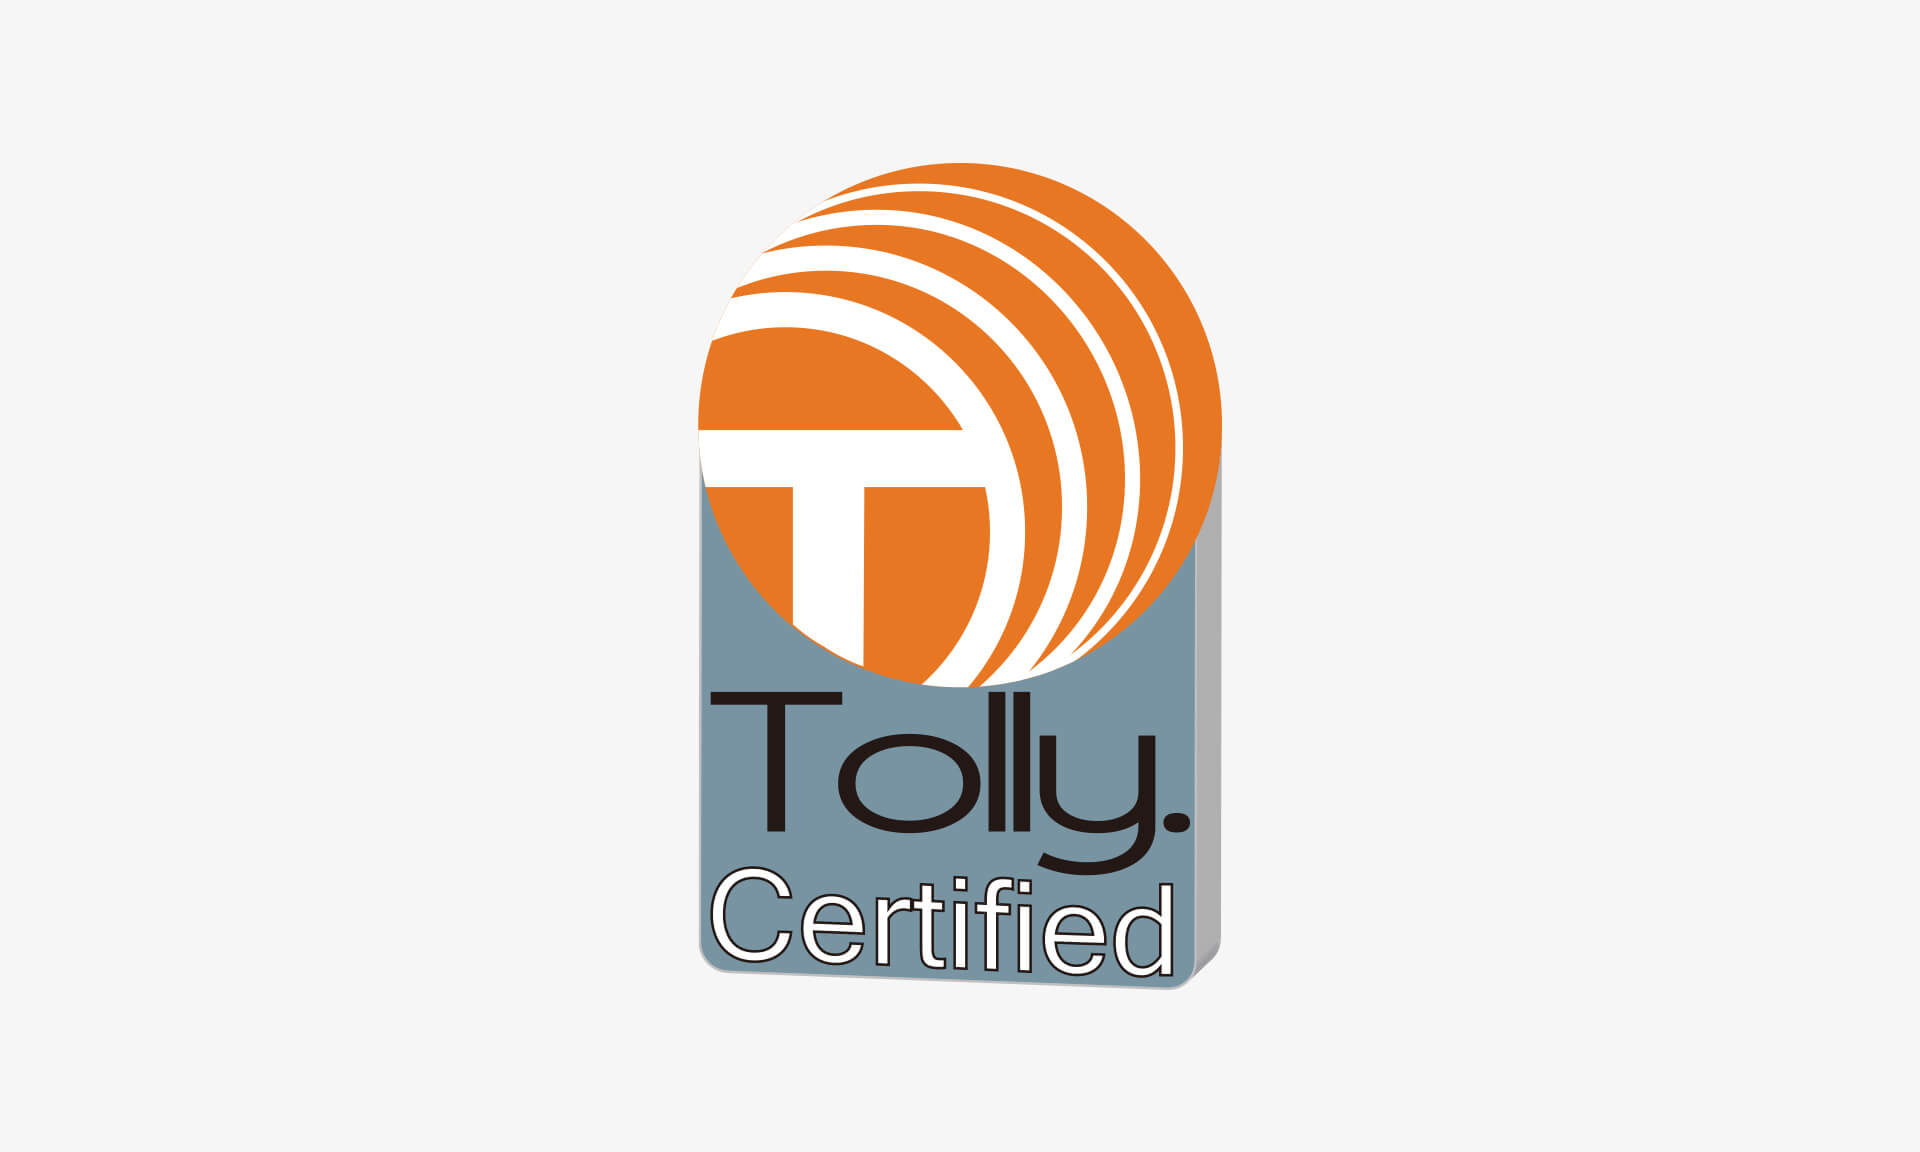 Tolly Certfied